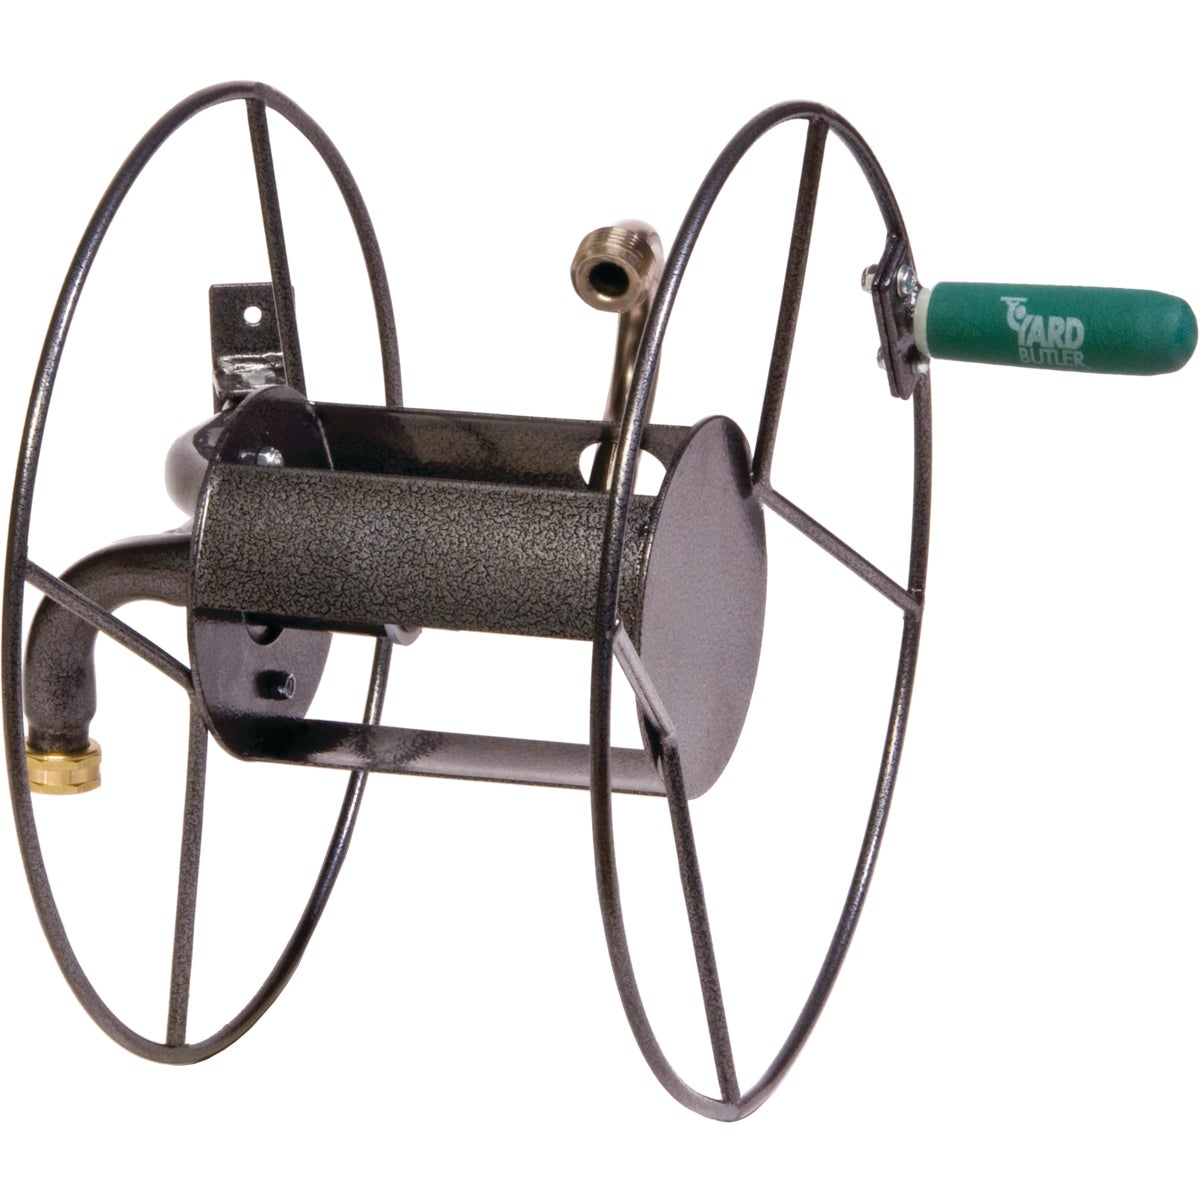 WALL MOUNT HOSE REEL - SRM-90 by Lewis Lifetime Tools